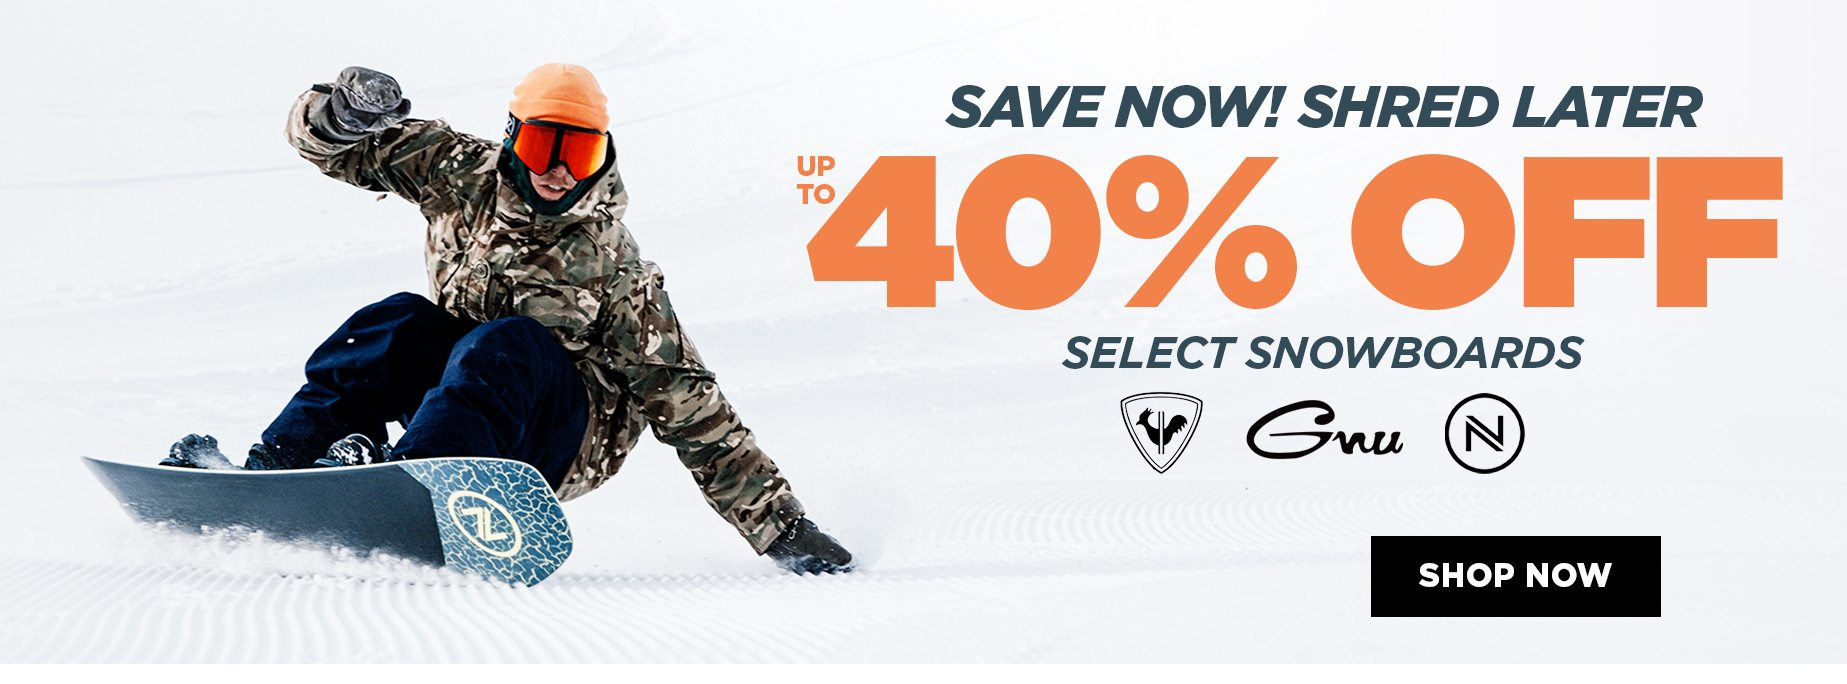 SAVE NOW, SHRED LATER - SHOP NOW, FOOTER